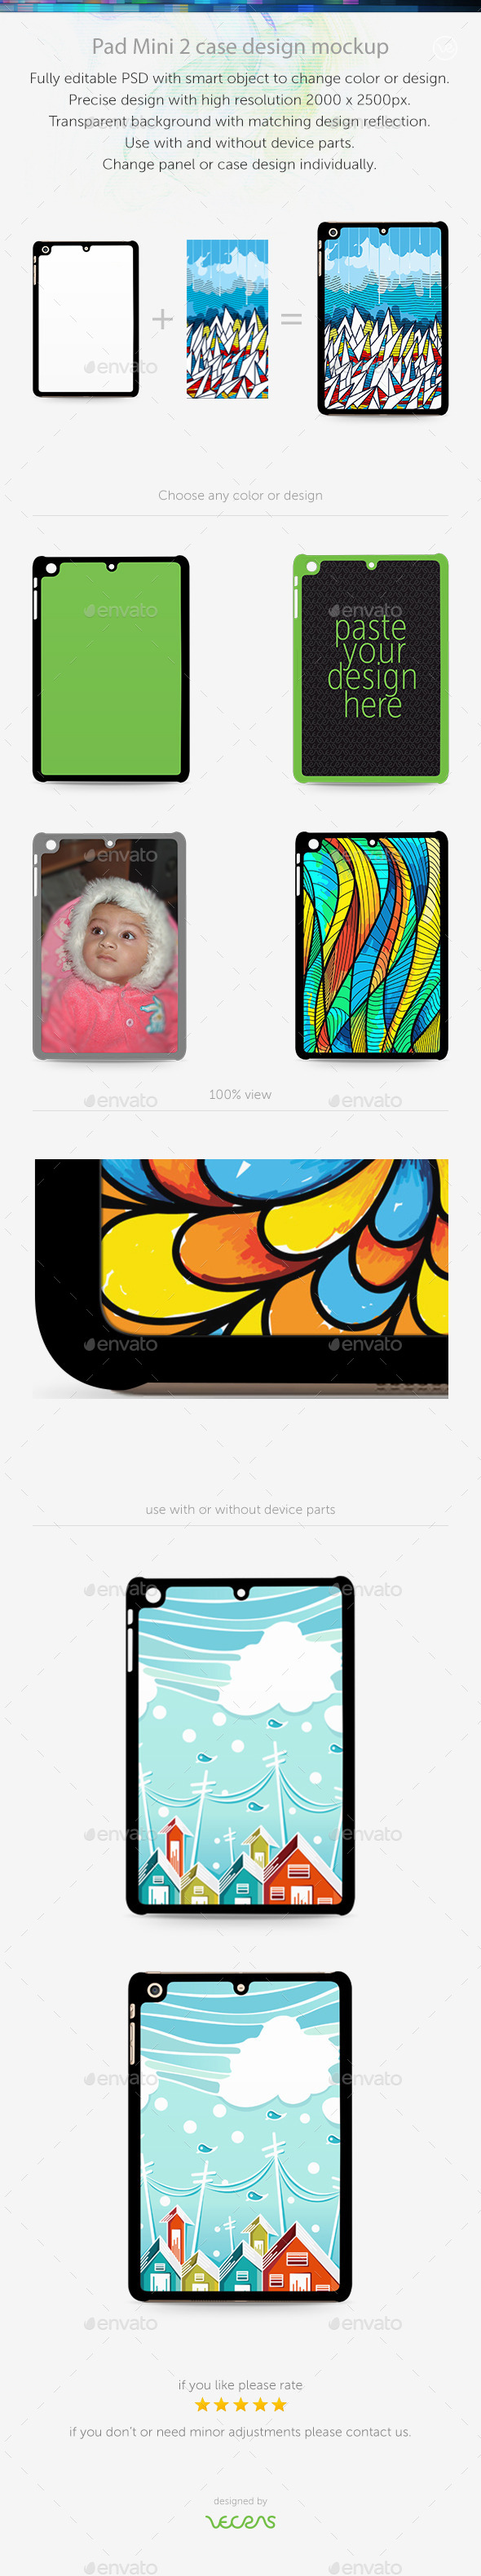 GraphicRiver Pad Mini 2 Sticker Case Design Mockup 10401988